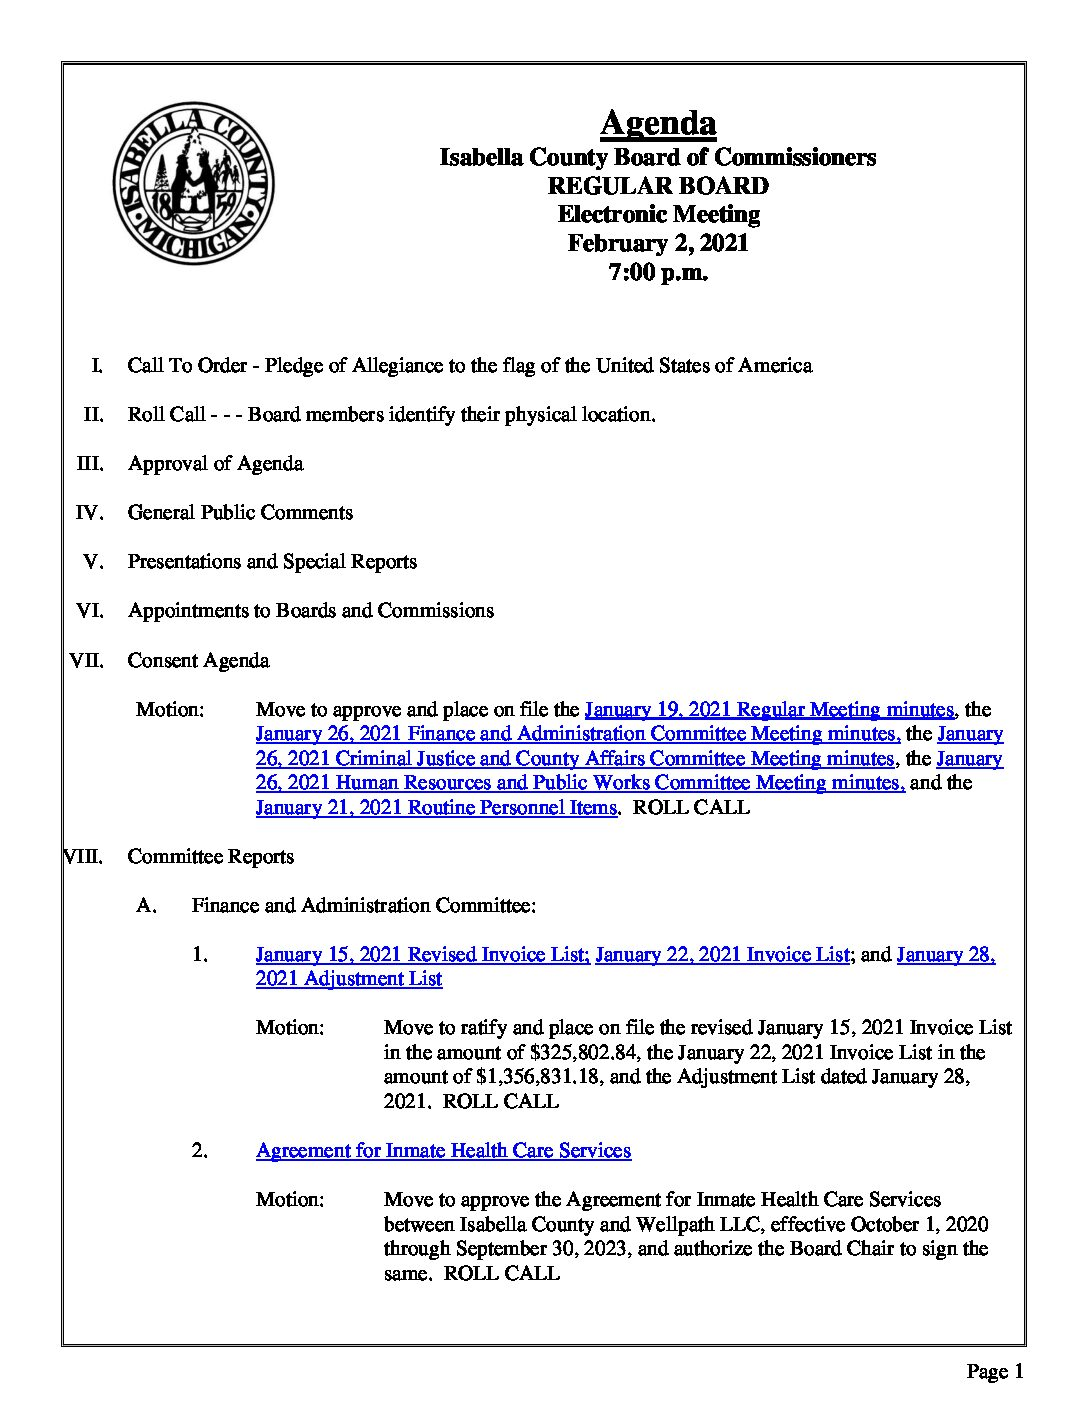 preview image of first page February 2, 2021 Agenda